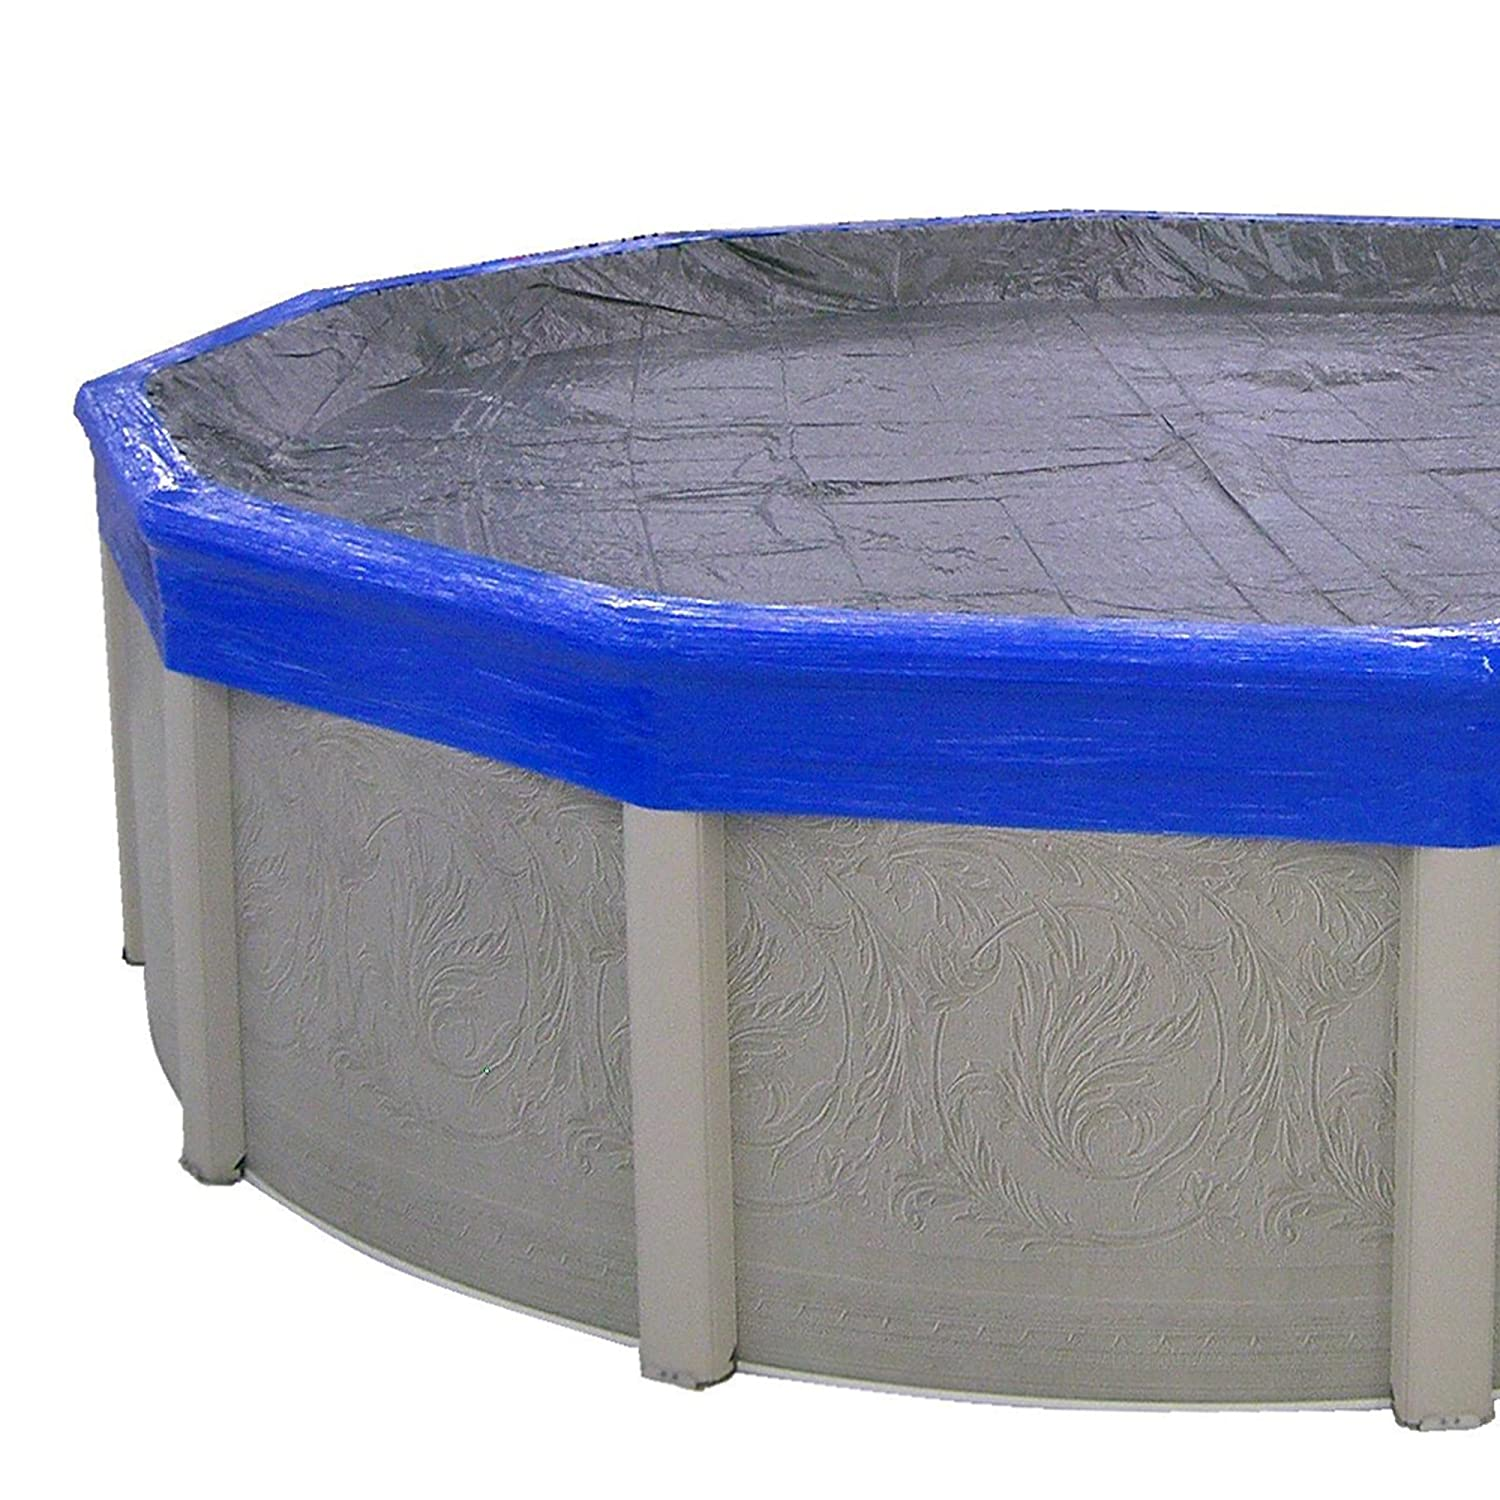 Amazoncom Blue Wave Winter Cover Seal for Above Ground Pool